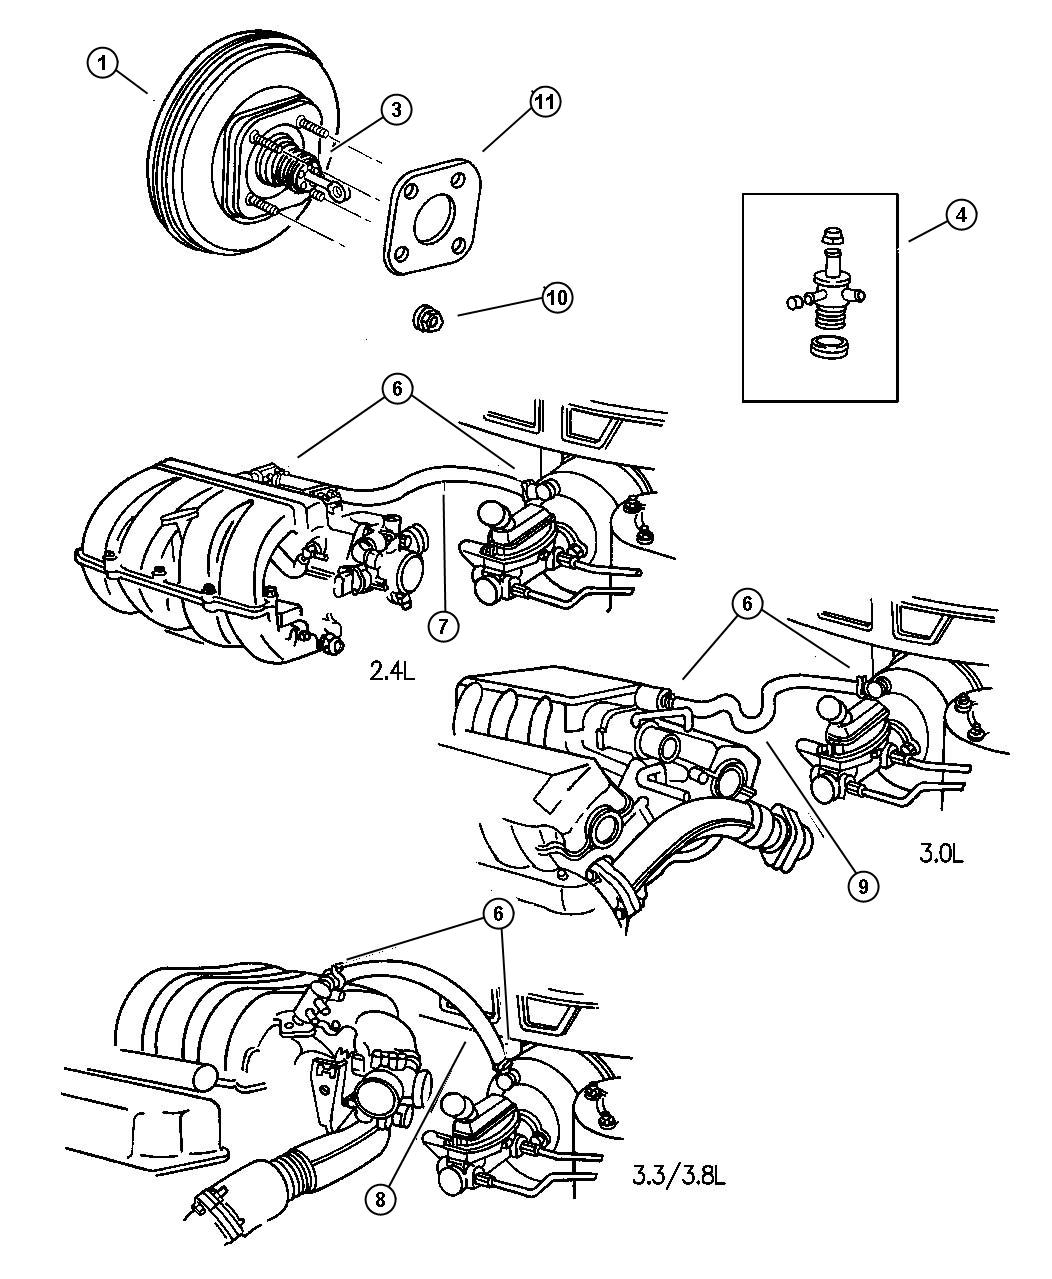 Plymouth Brakes Diagram Wiring Libraries Furthermore Of Unibody Car Frame Parts On Vehicle Auto Electrical Diagramplymouth